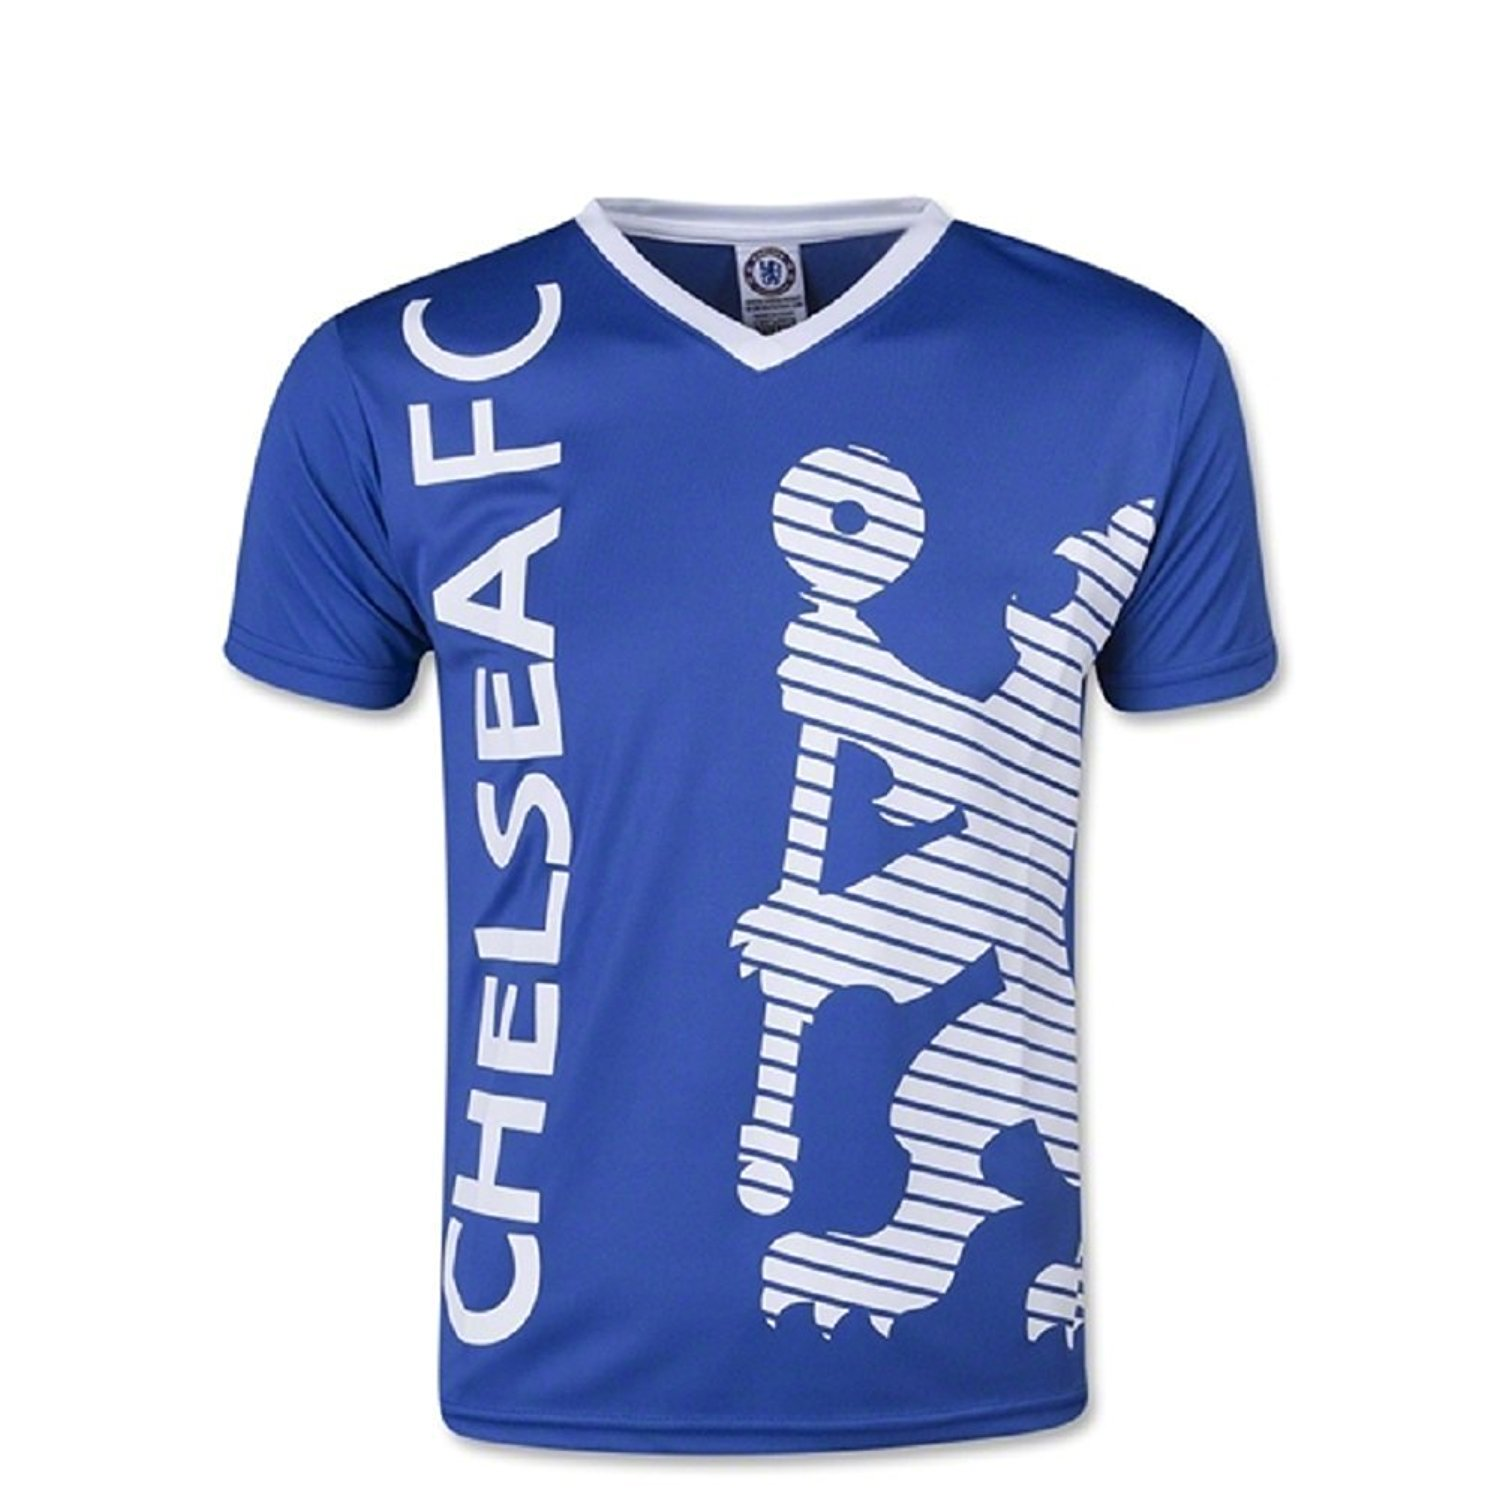 c9b71ac7c88 Get Quotations · Chelsea FC Youth Soccer Training Jersey-Blue/White  Customized Any Name